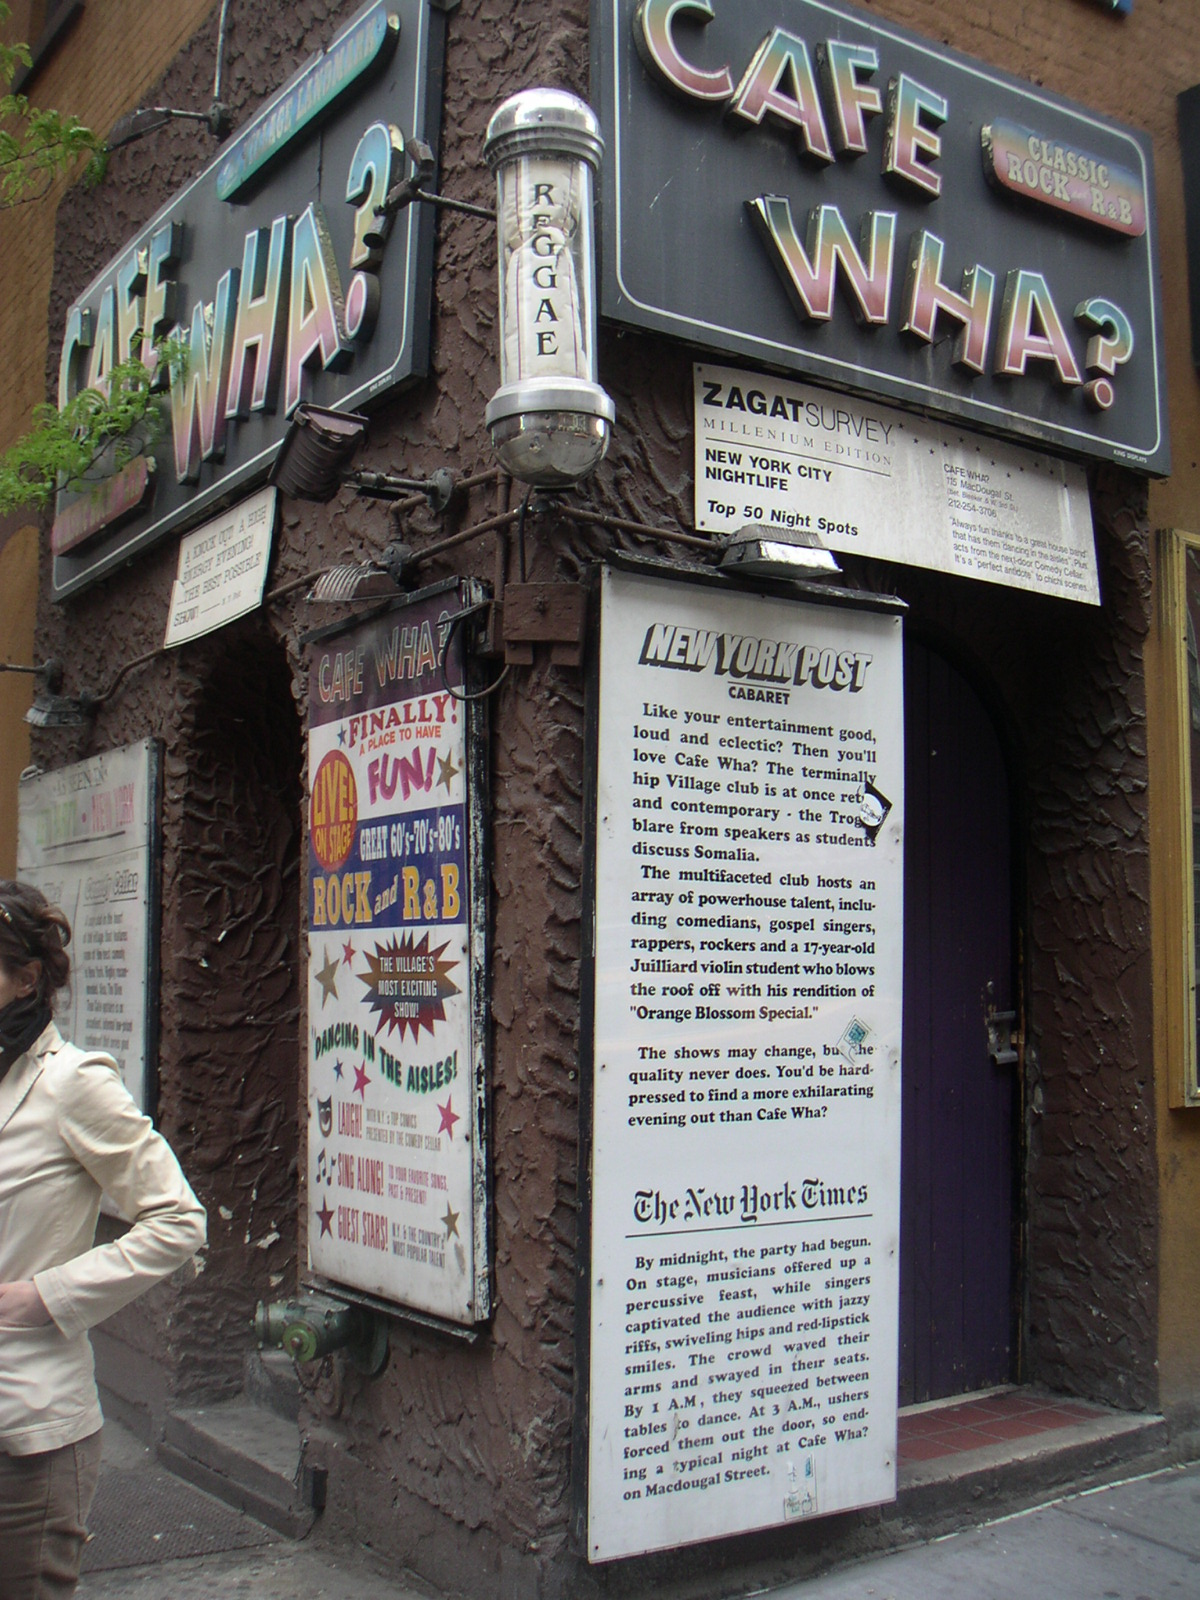 Cafe Wha Wikipedia